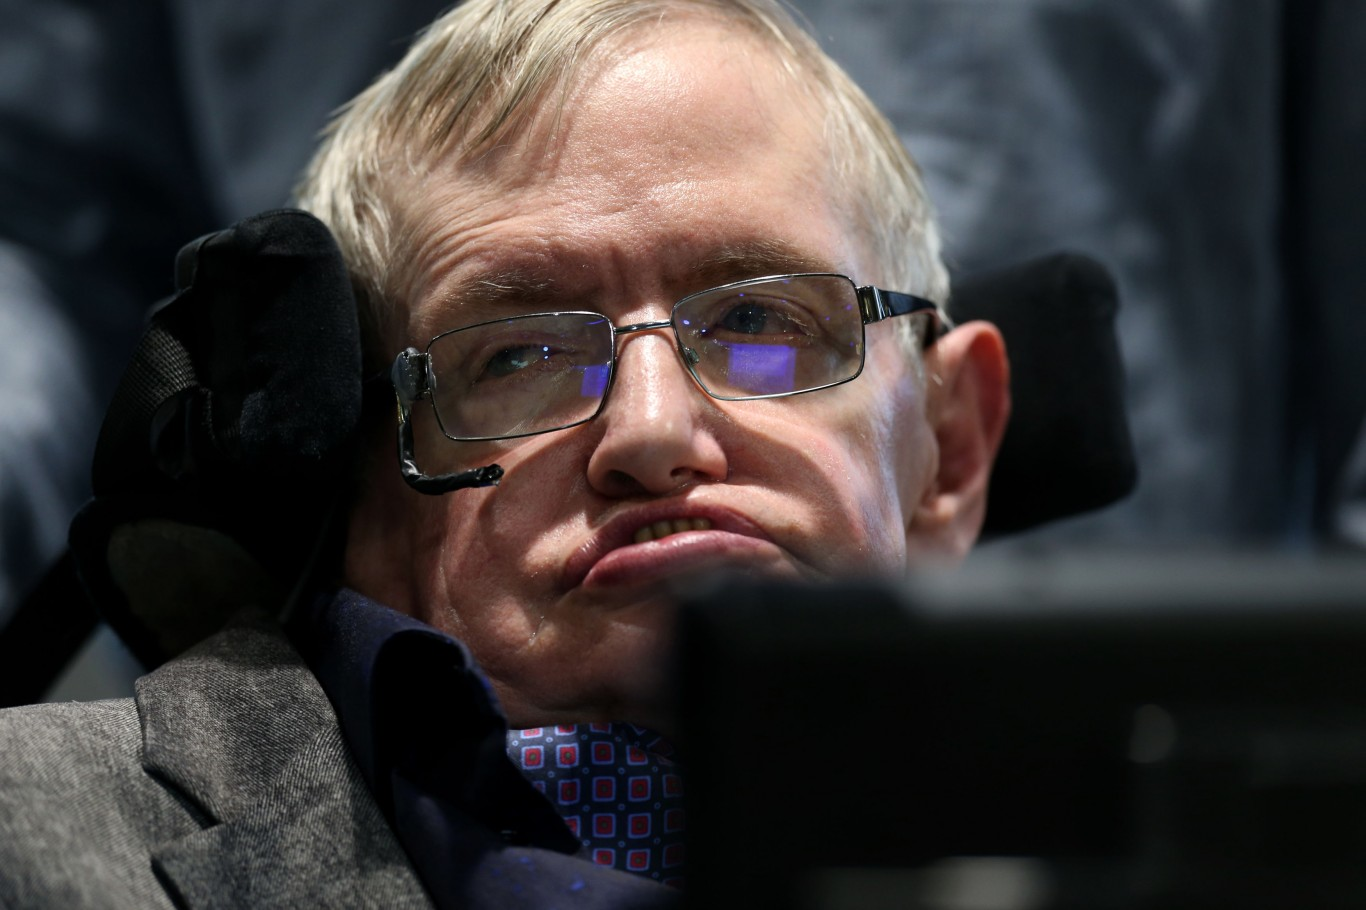 Stephen Hawking speaks during the launch of the Leverhulme Centre for the Future of Intelligence (CFI) in Cambridge.